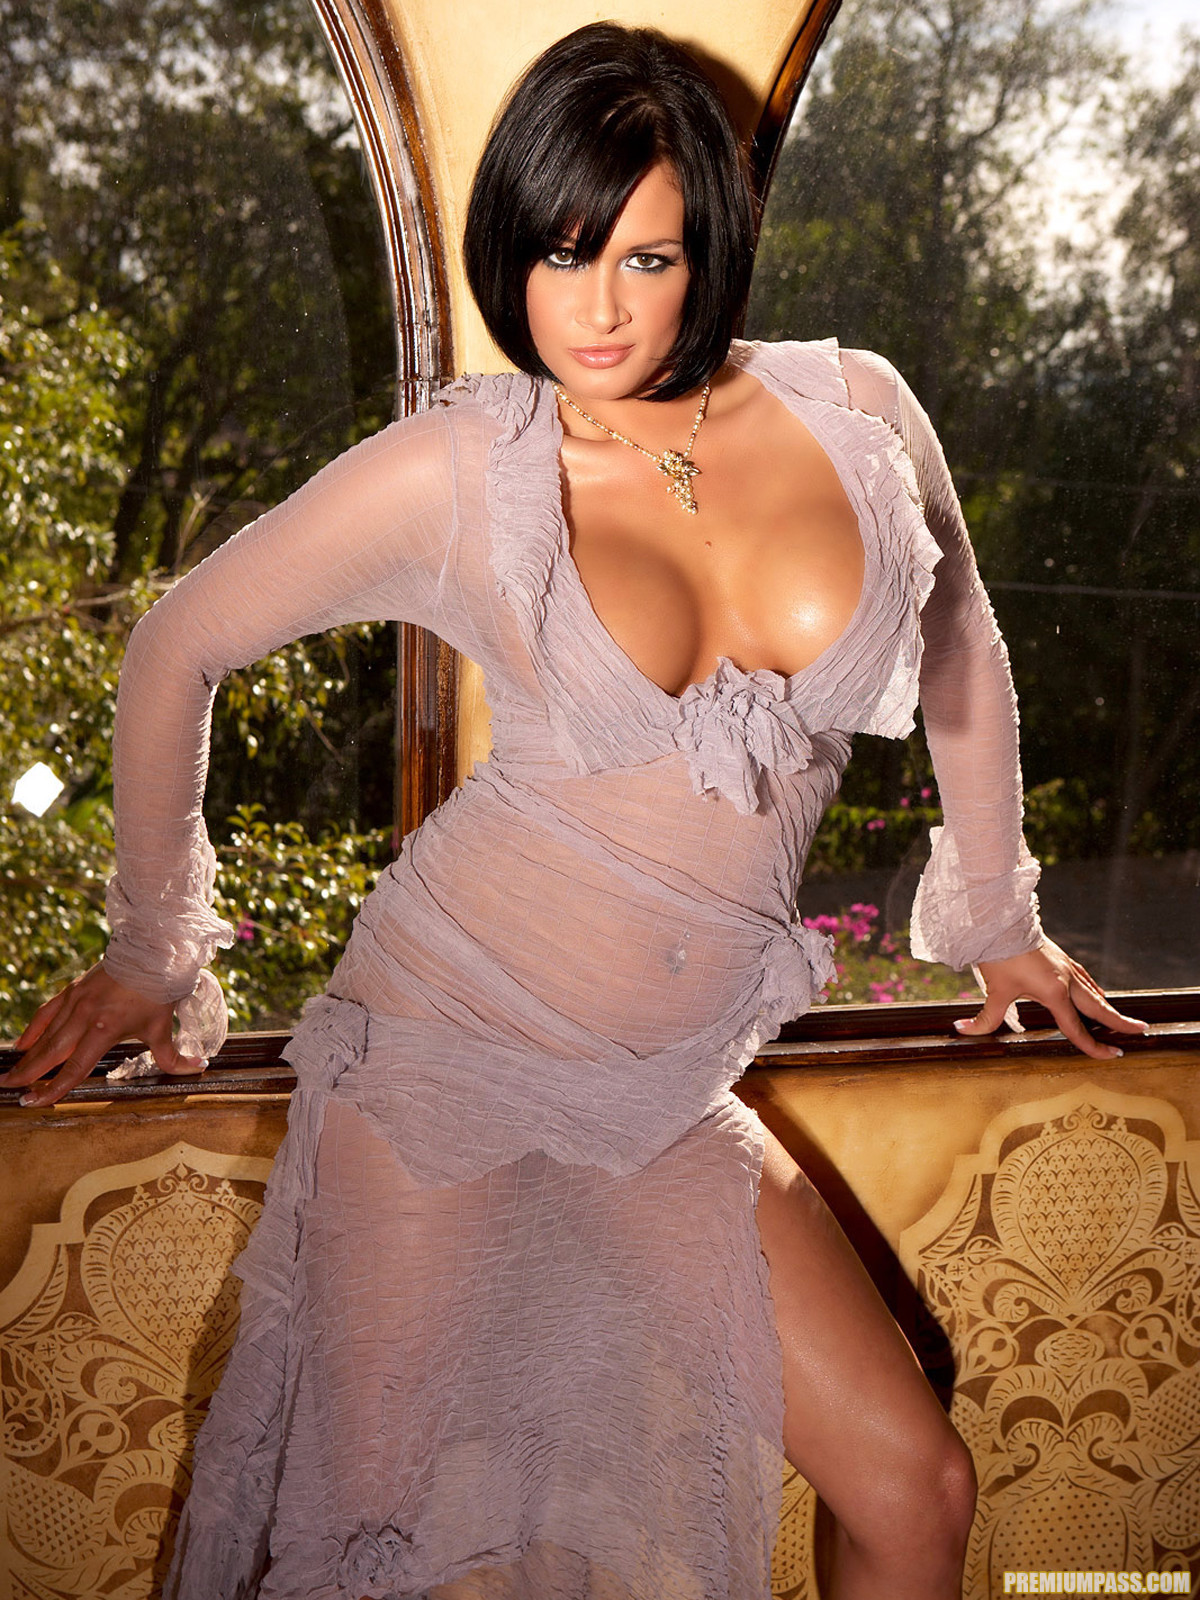 Consider, tory lane on top seems